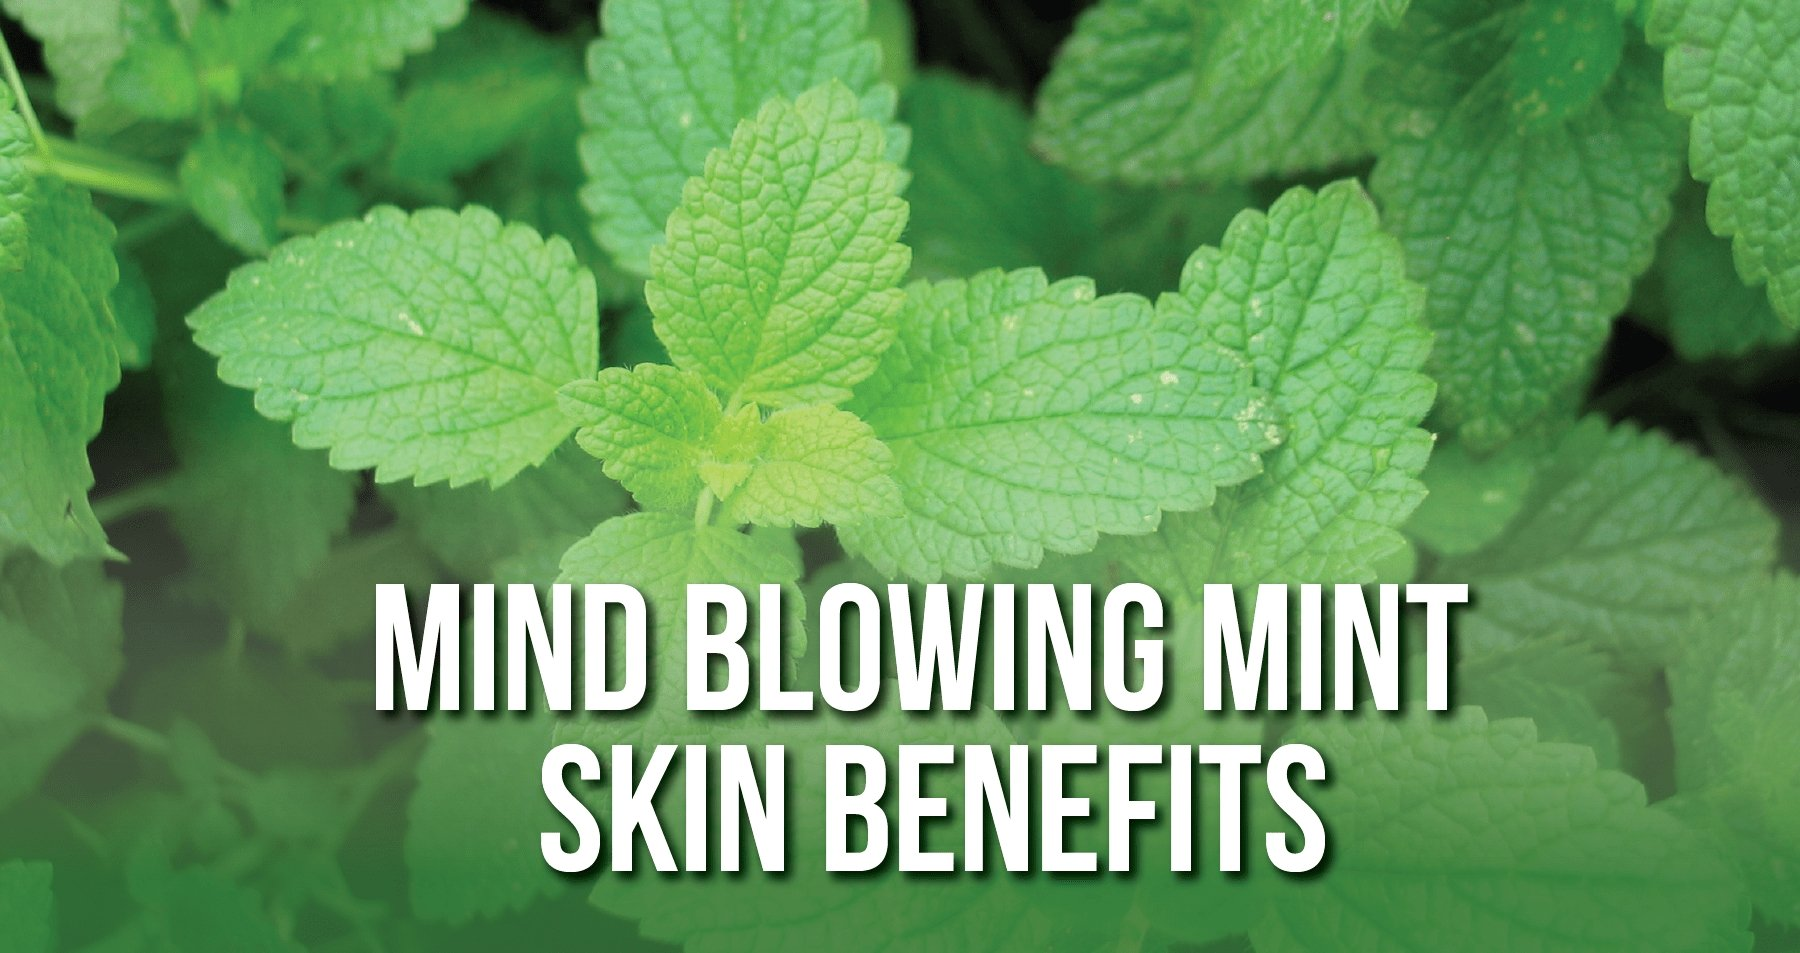 Mind Blowing Mint Skin Benefits | iHeart Nature